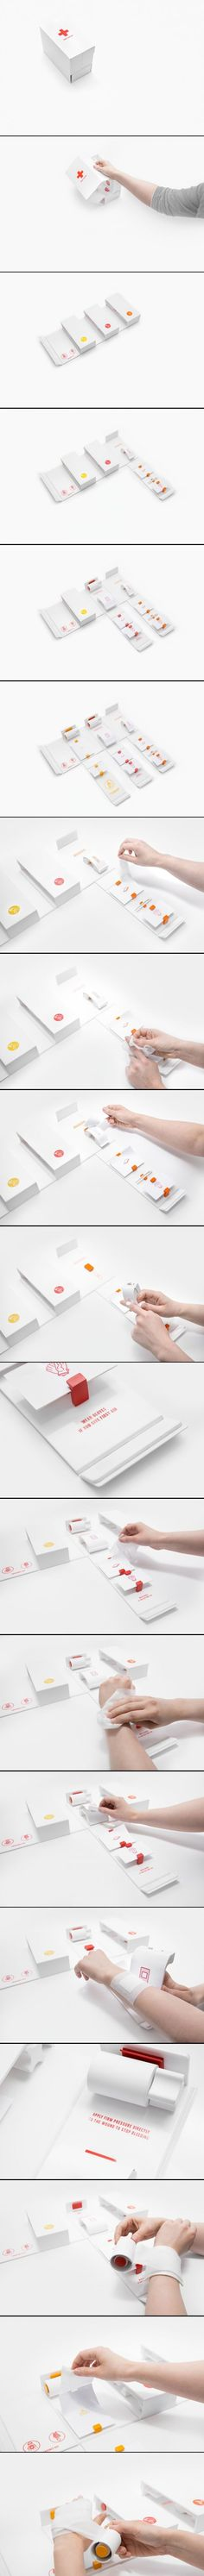 DIY First Aid Kit packaging by Gabriele Meldaikyte Clever Packaging, Brand Packaging, Medical Packaging, Packaging Design Inspiration, Graphic Design Inspiration, Diy First Aid Kit, Creative Design, Branding Design, Amazing